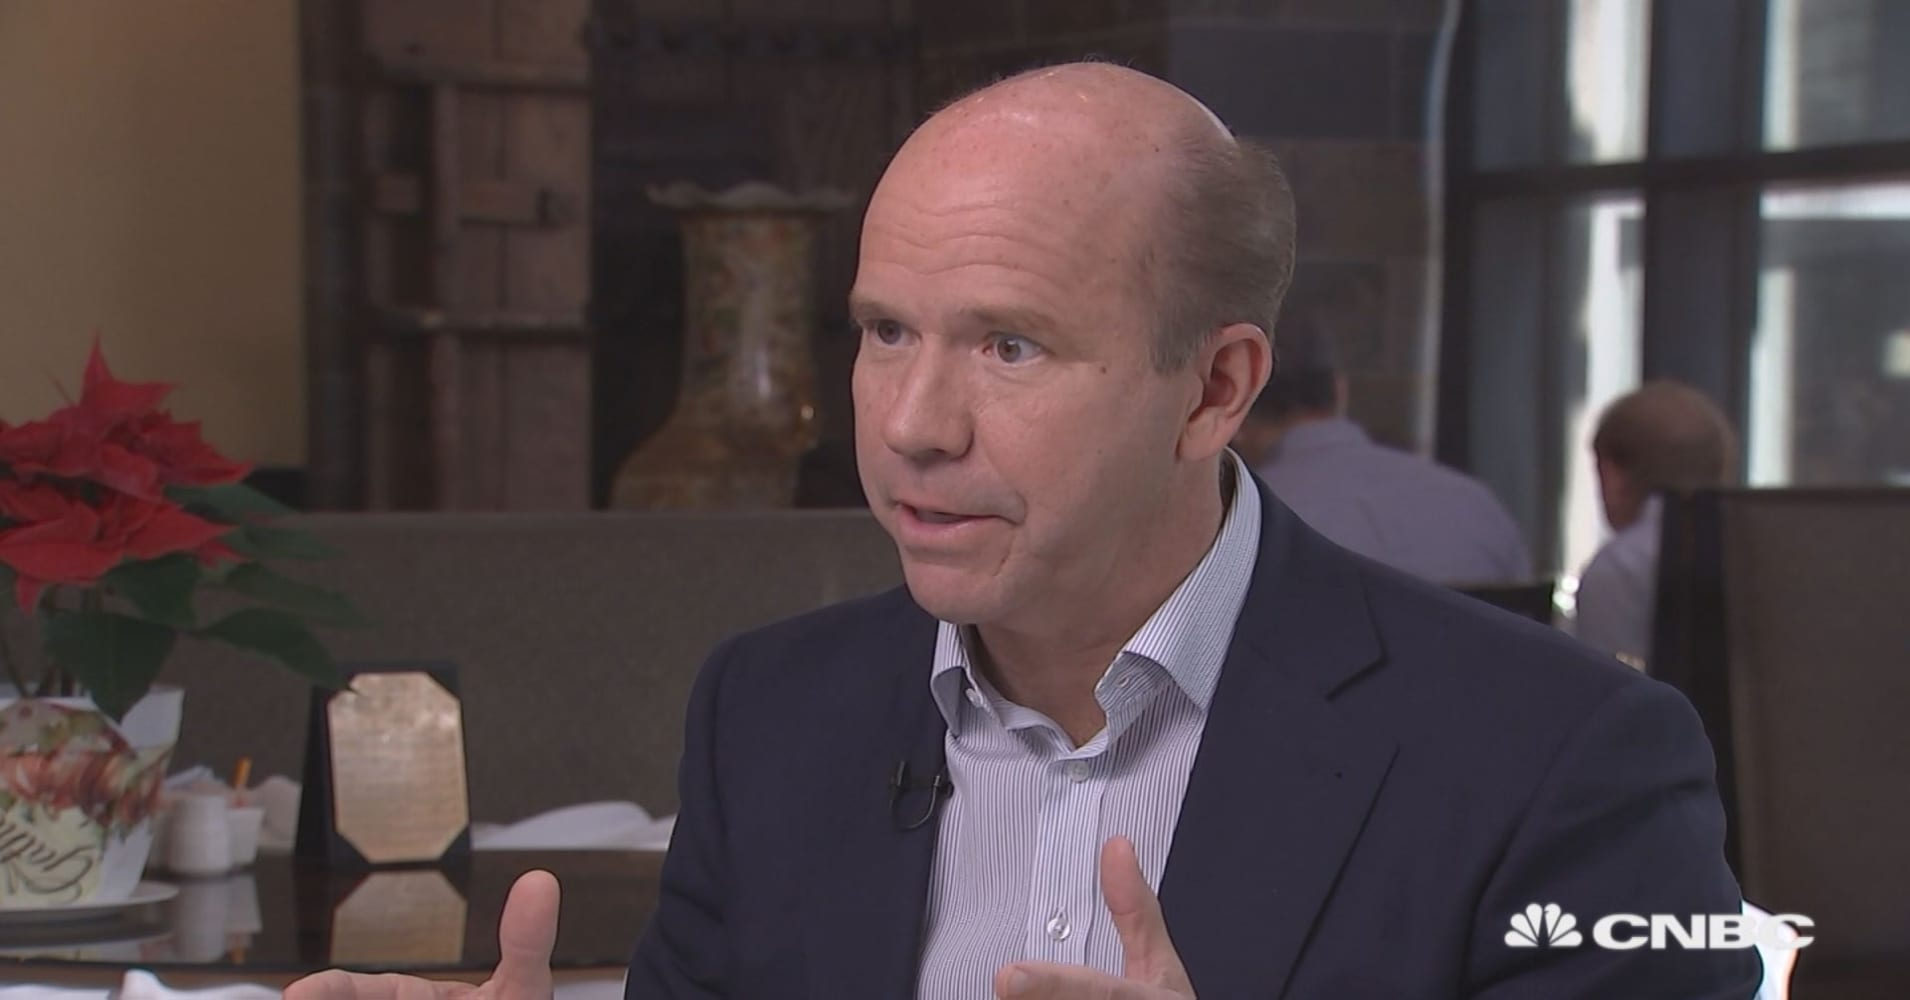 Presidential candidate John Delaney says every American should have health care 'as a right'